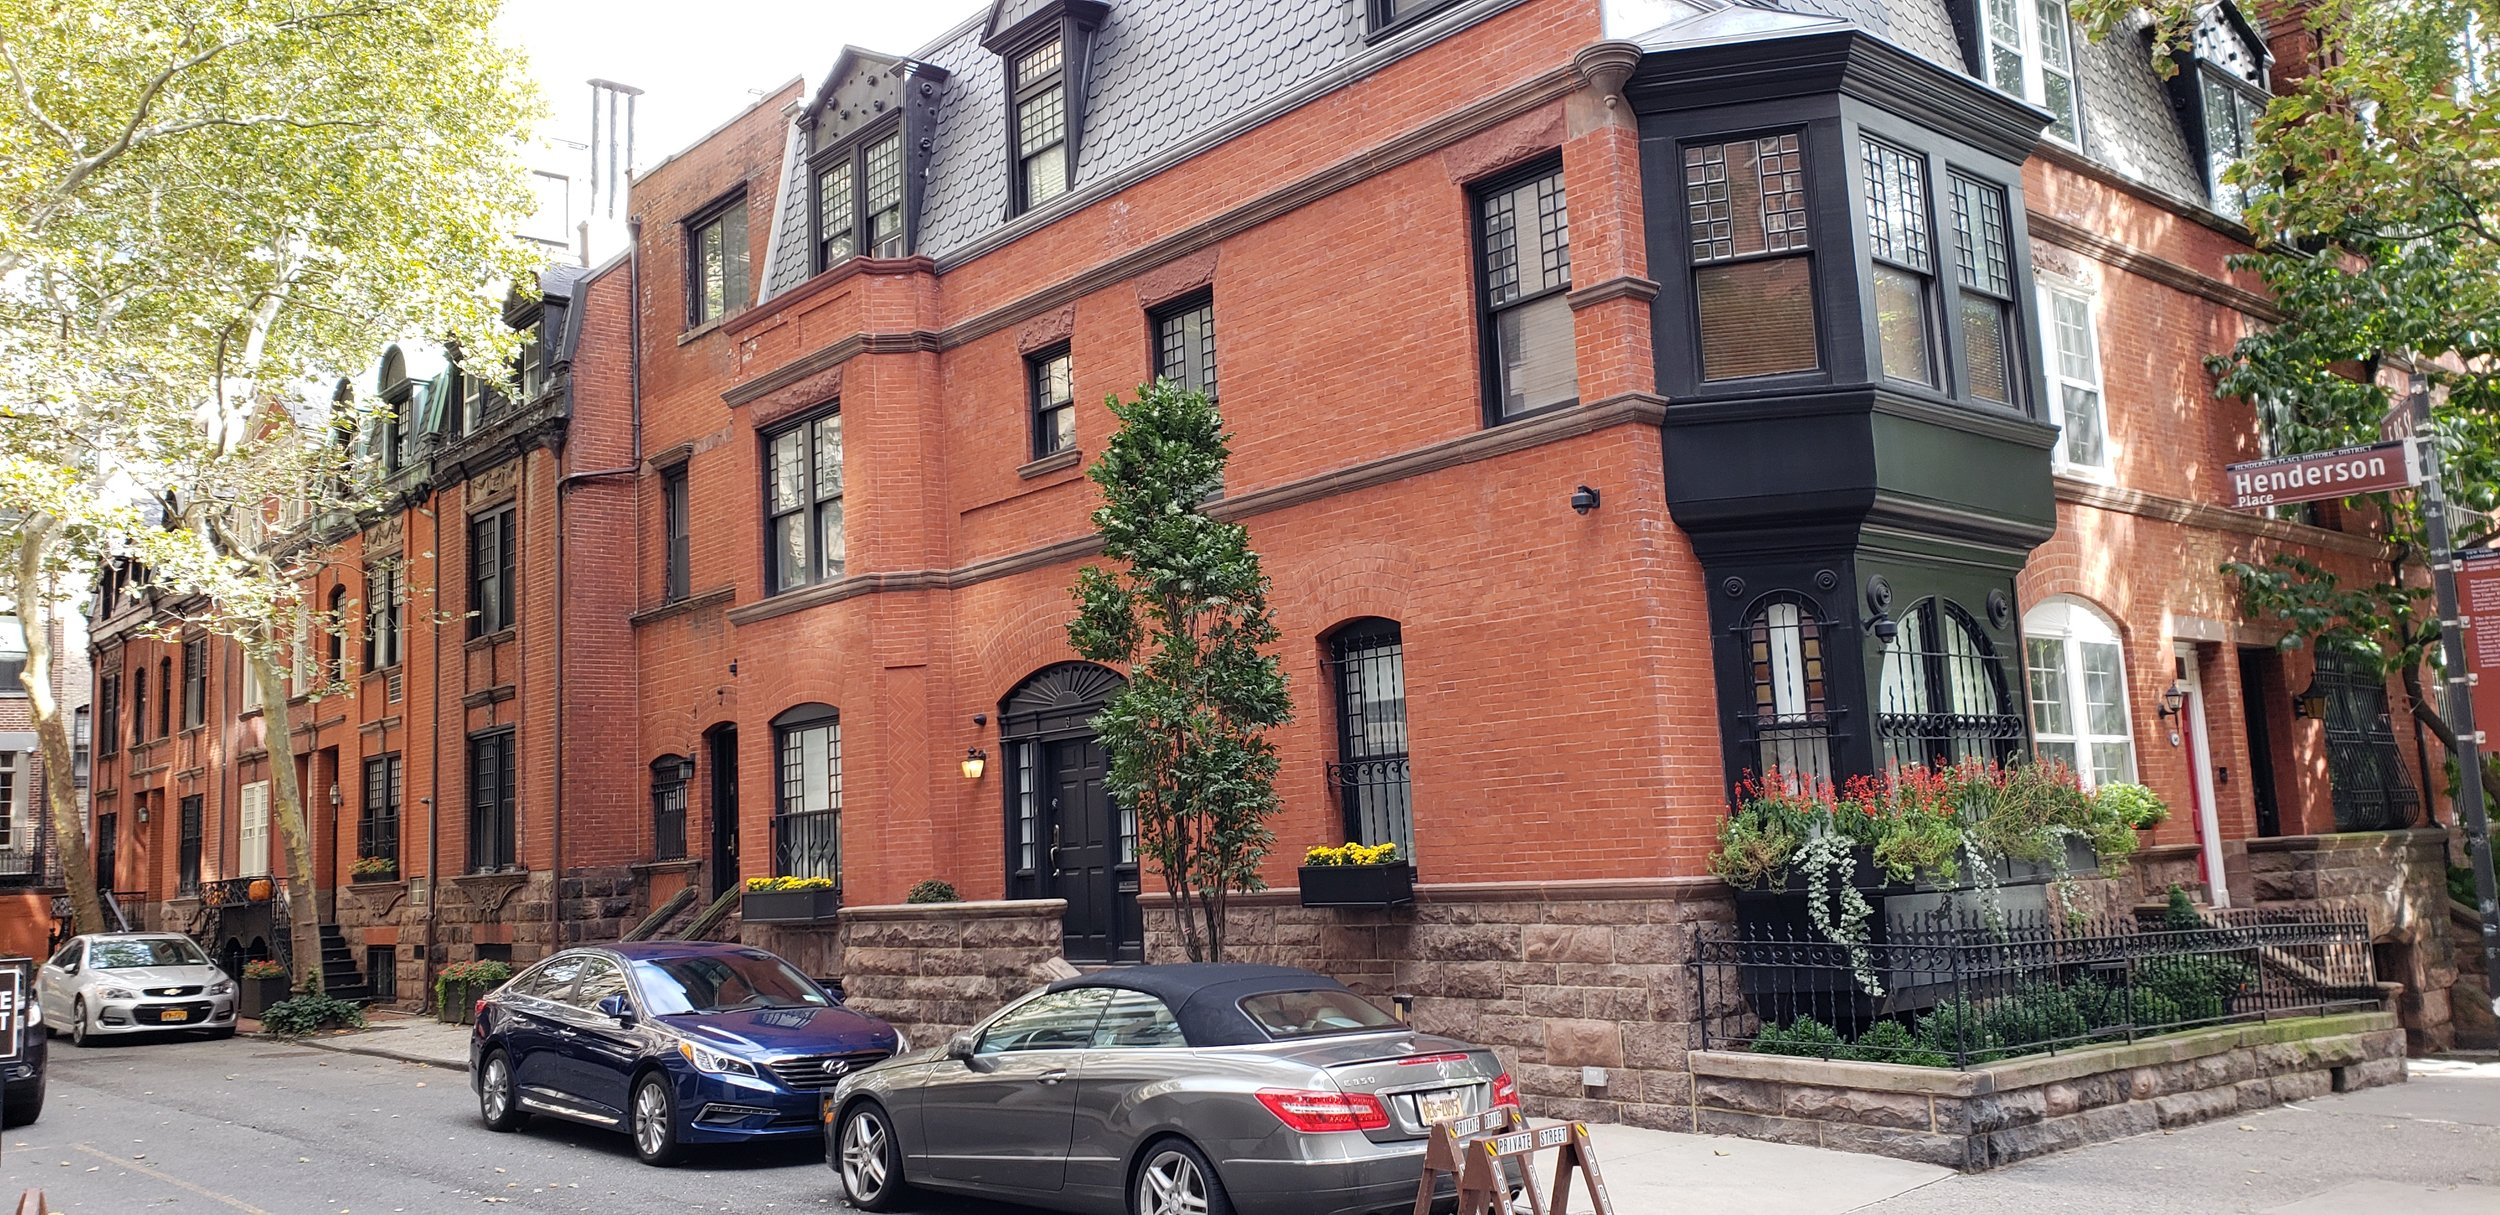 (Henderson Place, East 86th Street)